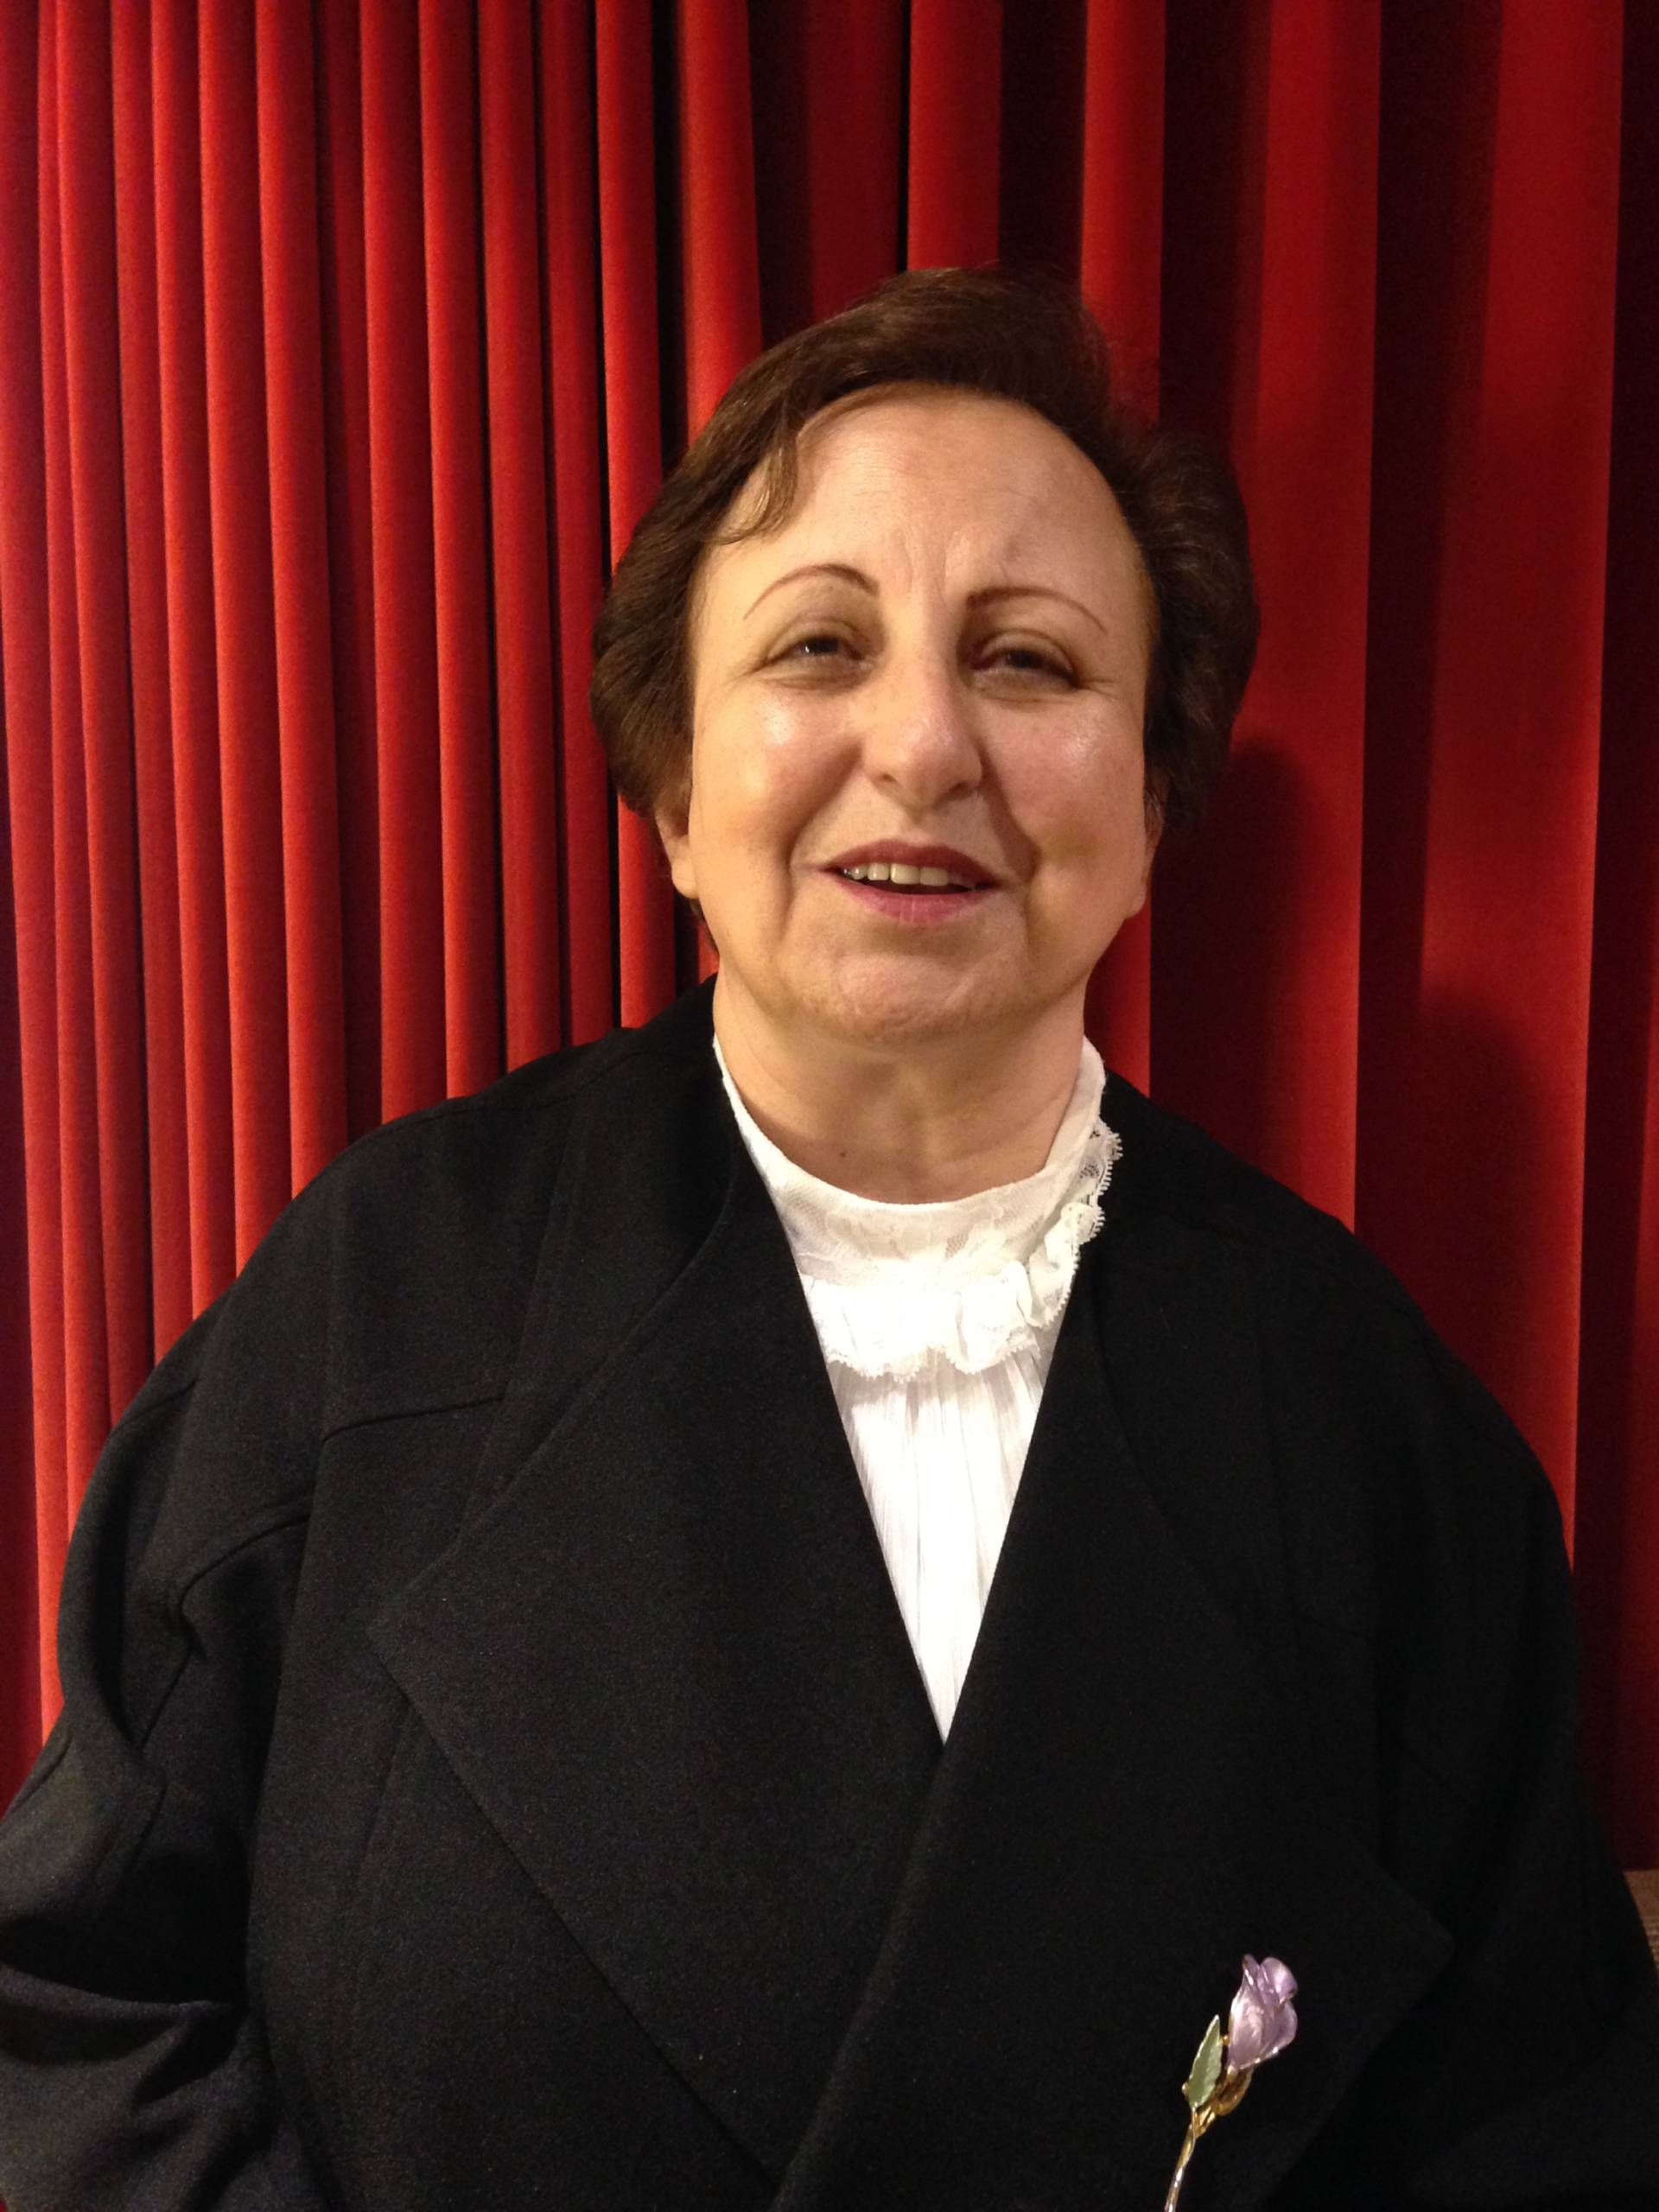 Iranian Nobel Peace Laureate Shirin Ebadi Speaks Out on Human Rights